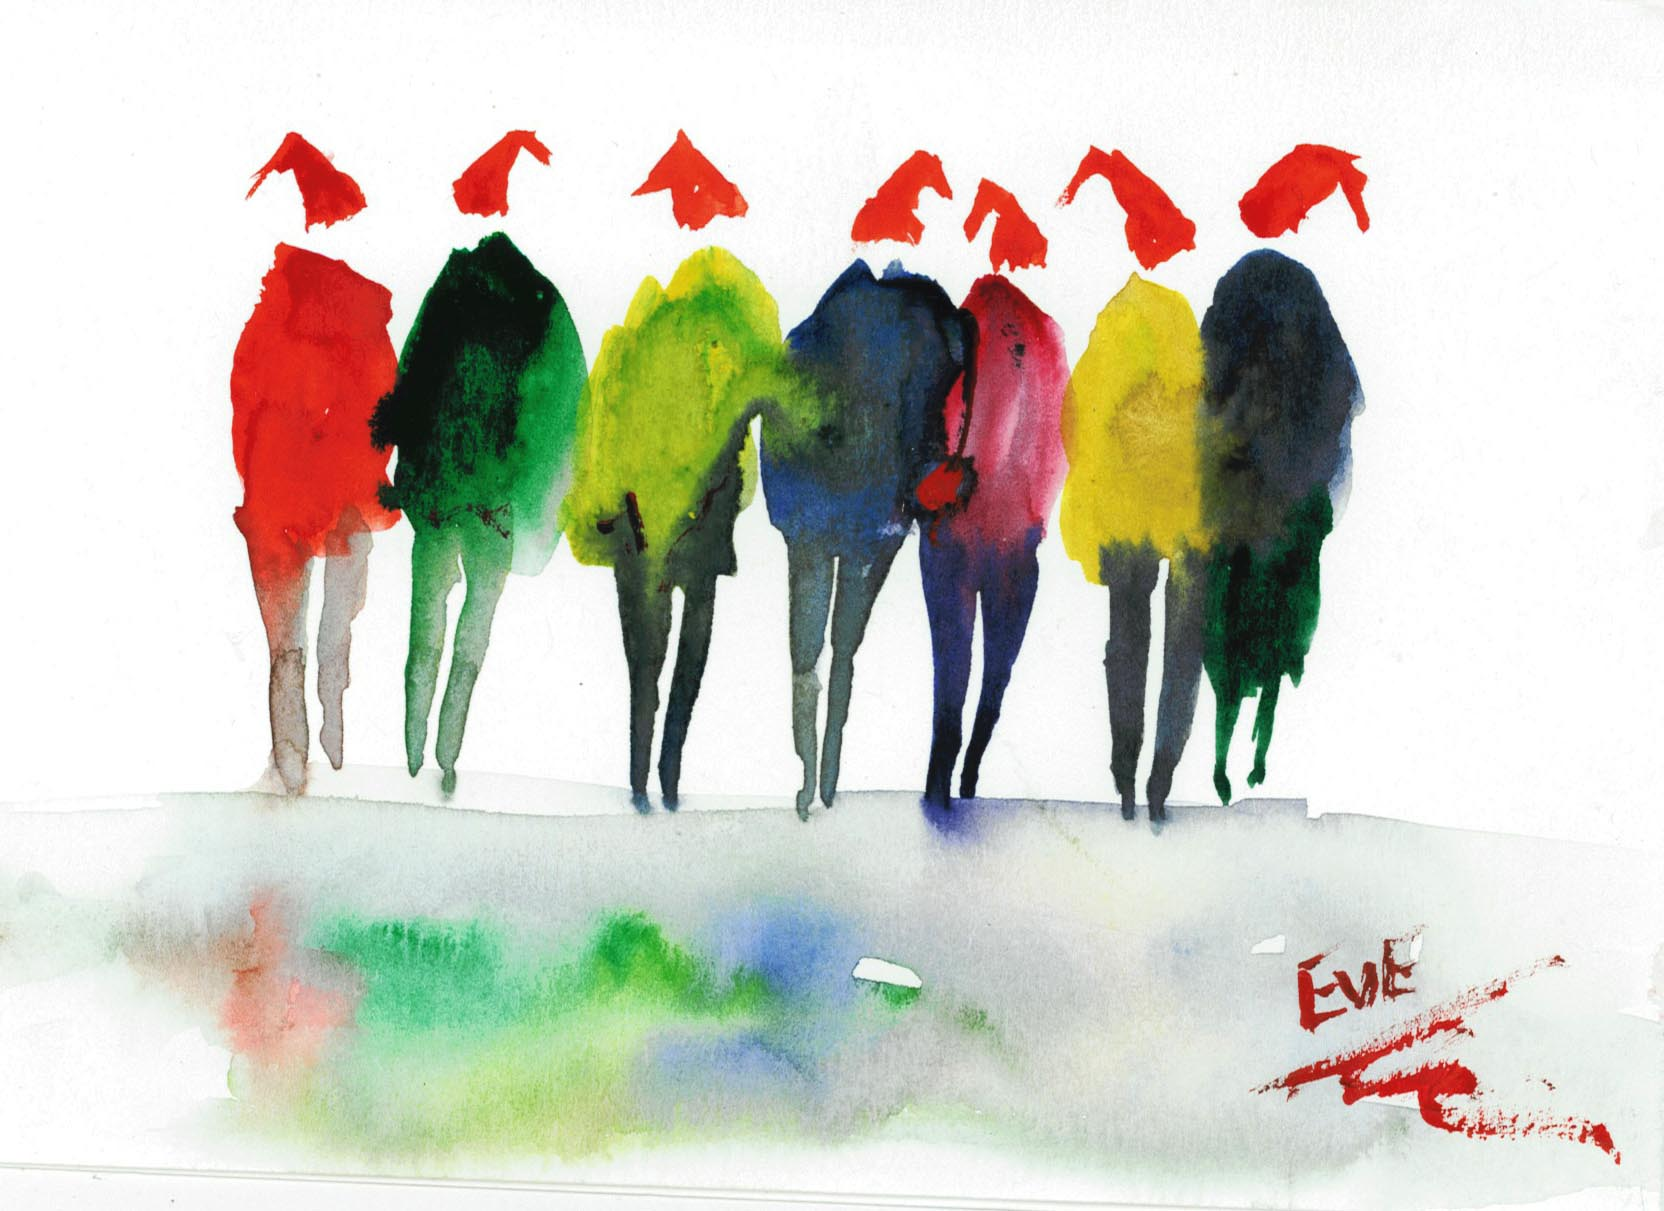 Fun Christmas cards in Watercolour « EvAntArt